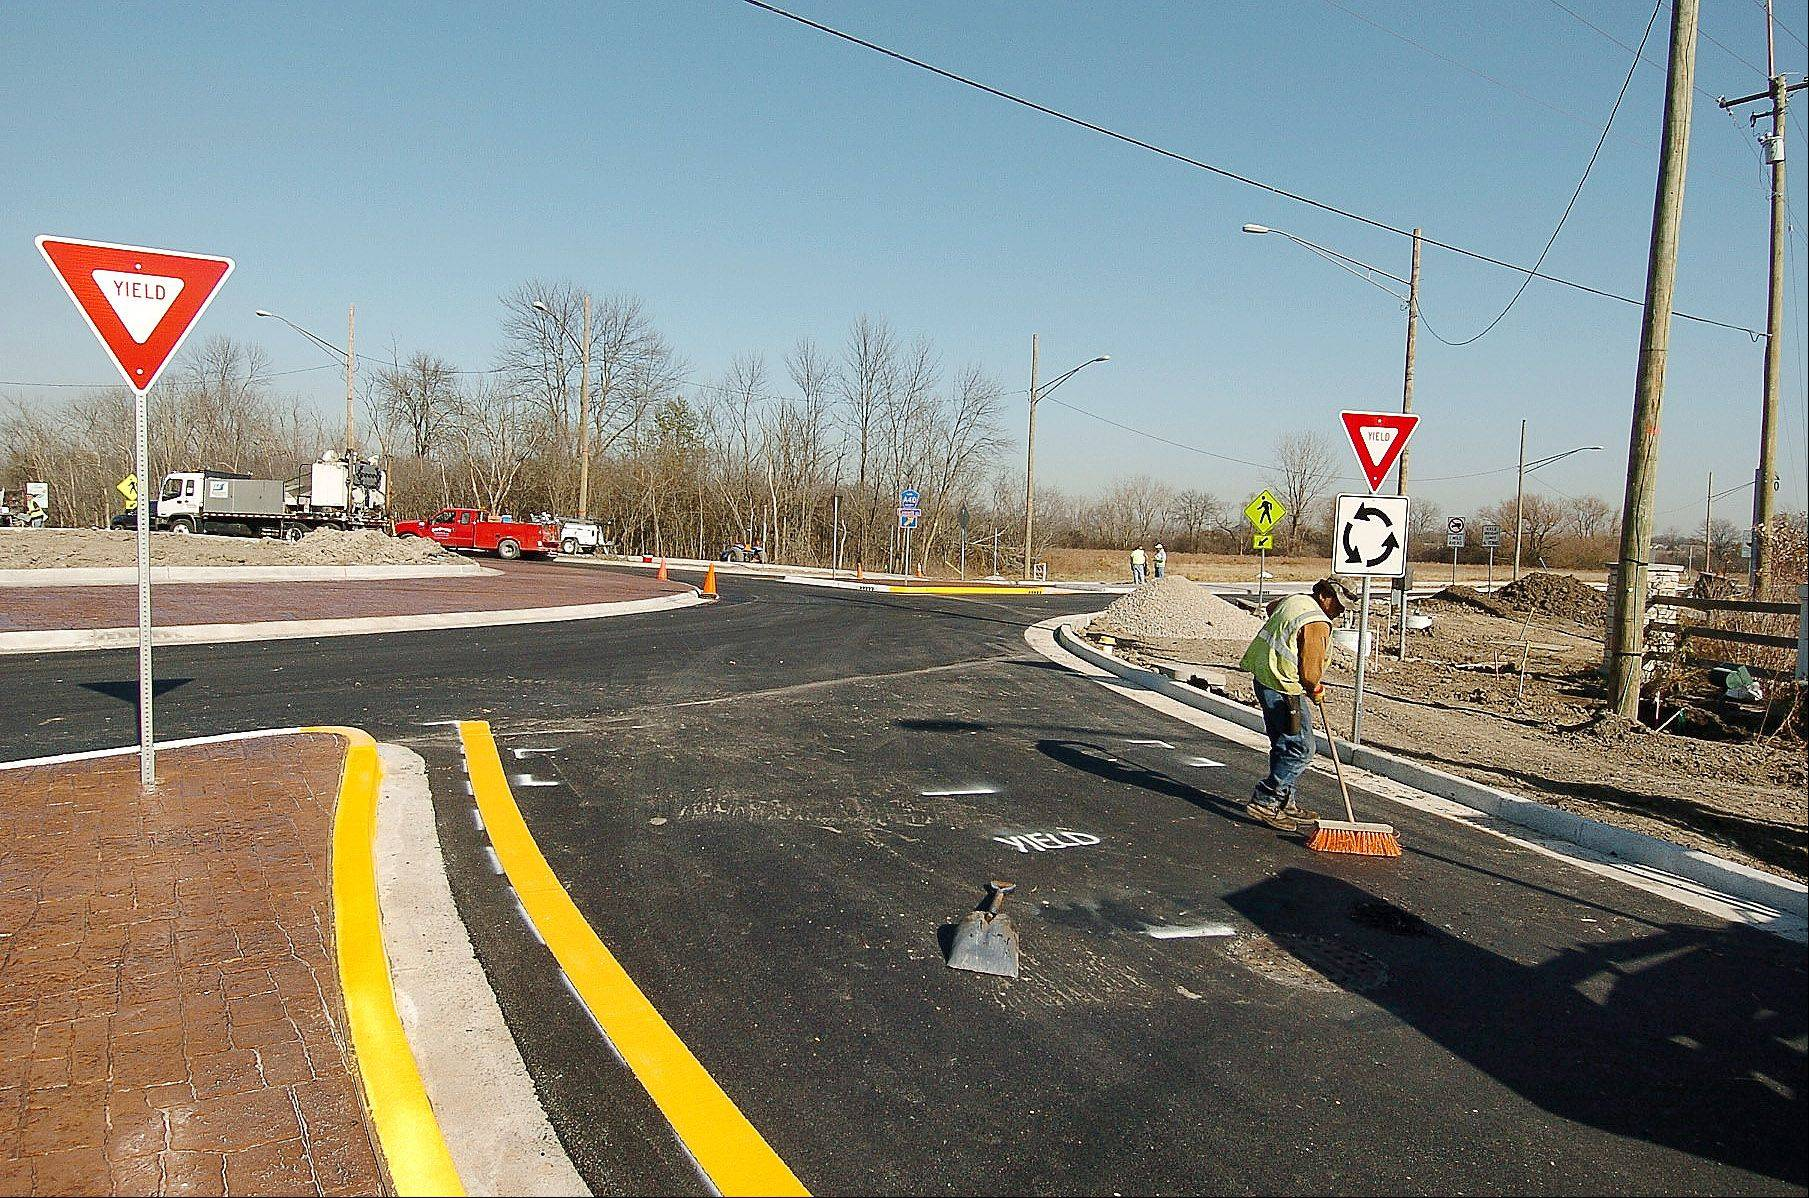 This new roundabout is at the intersection of Everett Road and Riverwoods Road in Lincolnshire.